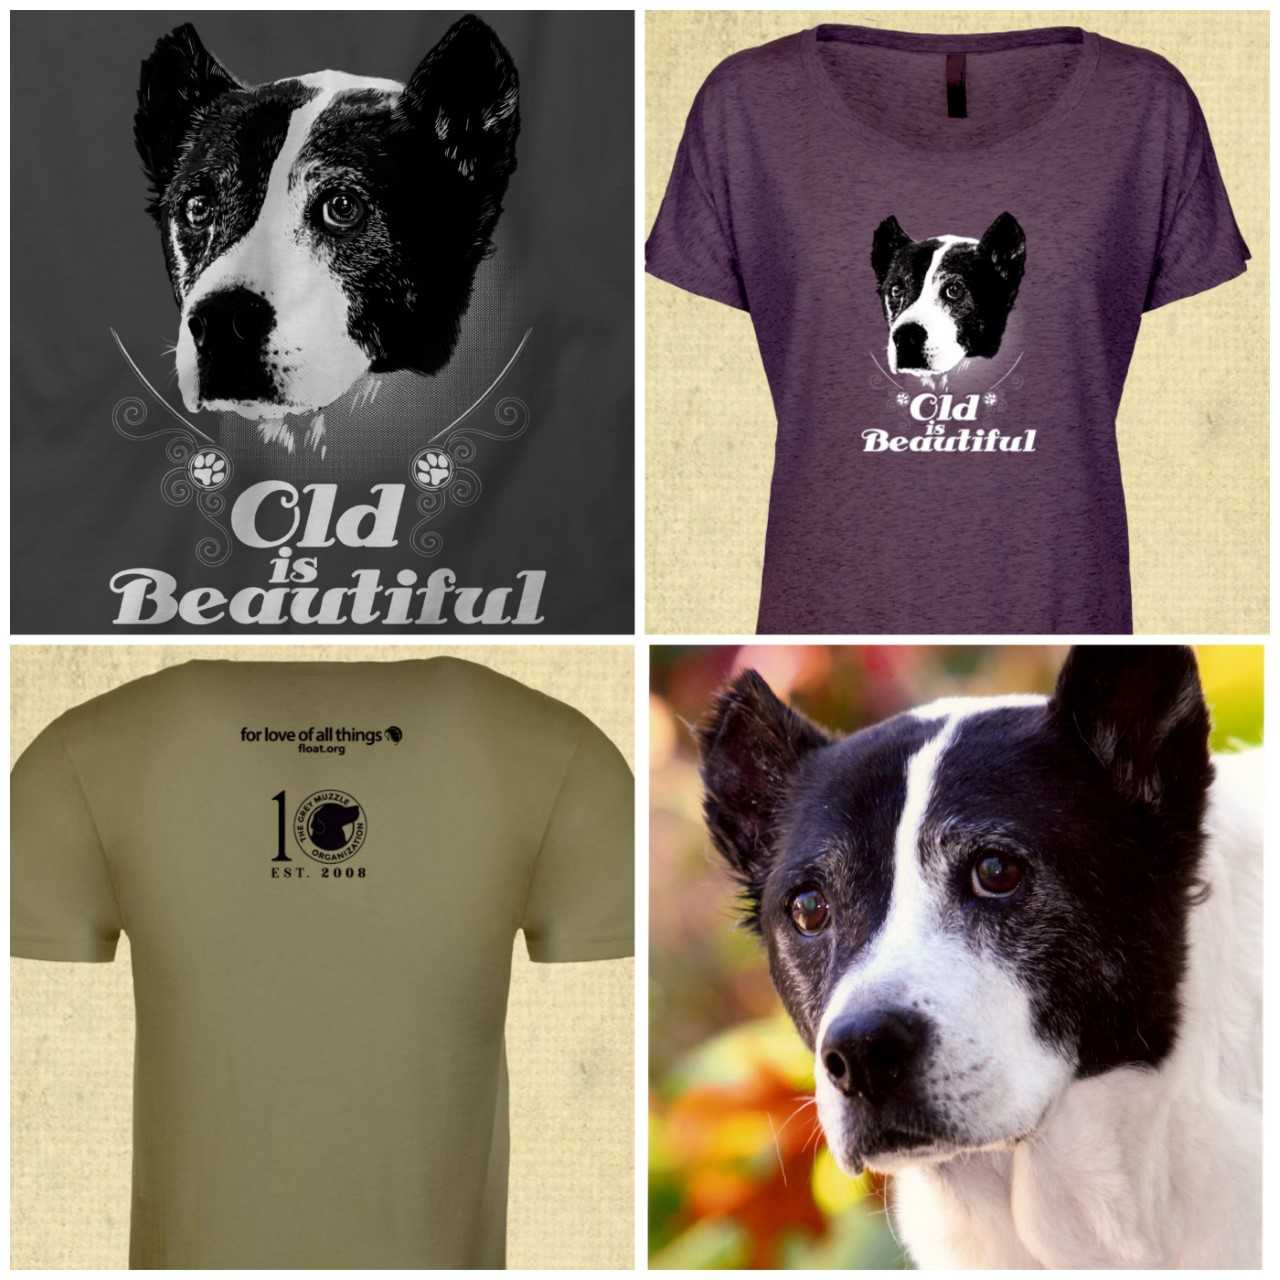 """Four pictures. In top left, black and white picture of dog with """"Old is Beautiful"""" text. Top right, Purple tee with dog from top left. Bottom left, """"for the love of all things, float.org"""" and grey muzzle 10 year logo t shirt. Bottom rt, pic of b&w dog"""